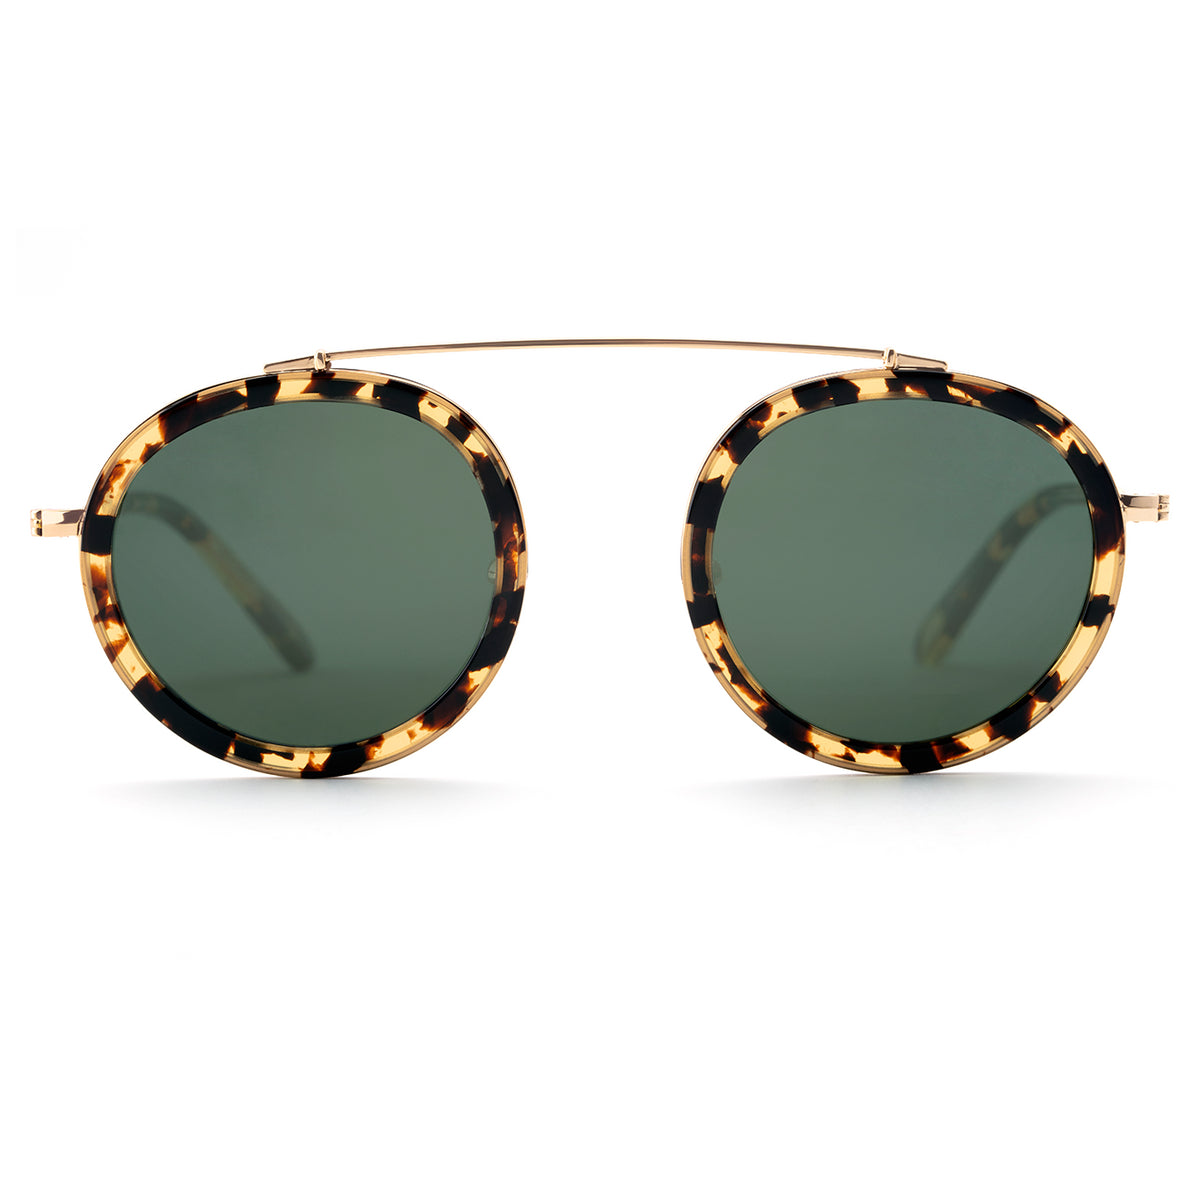 CONTI | Zulu Polarized 24K handcrafted acetate sunglasses